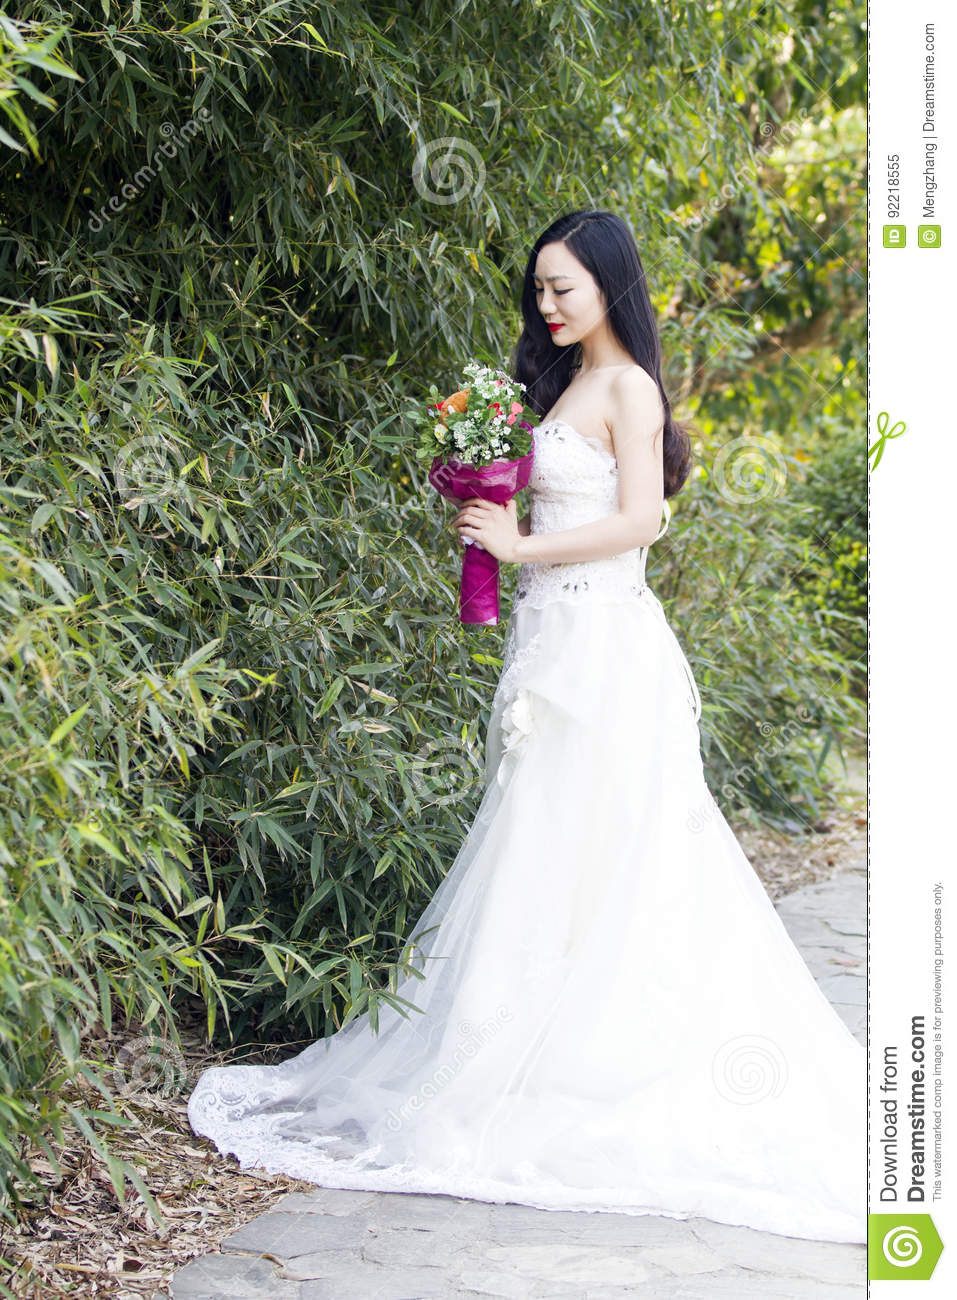 A young woman wedding photo/portrait stand by bamboos